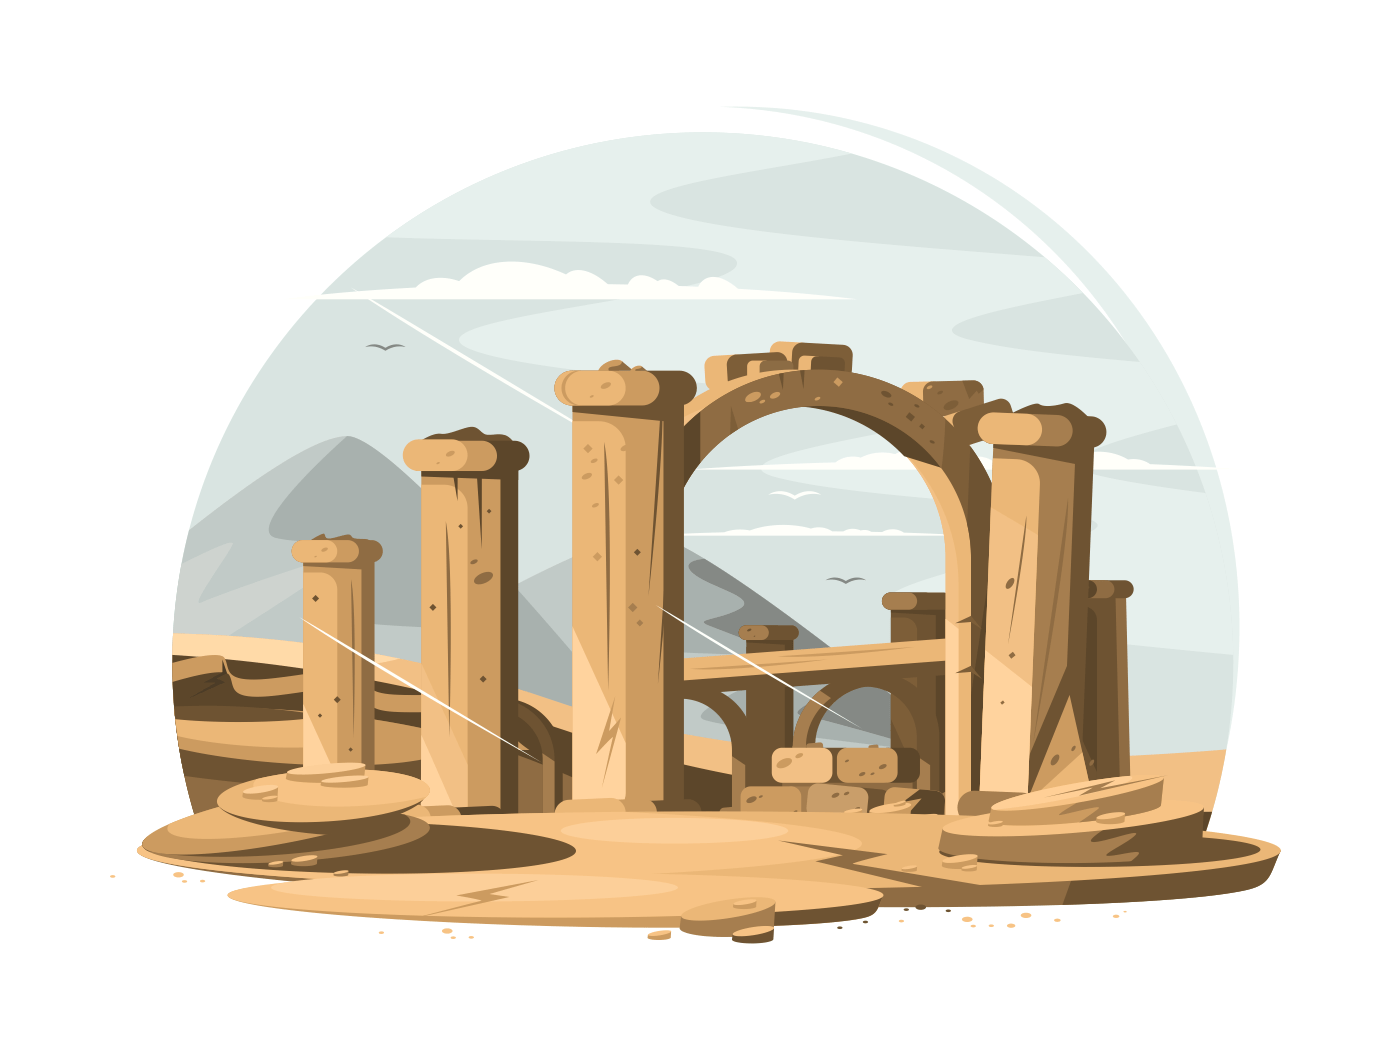 Architectural ruins old illustration